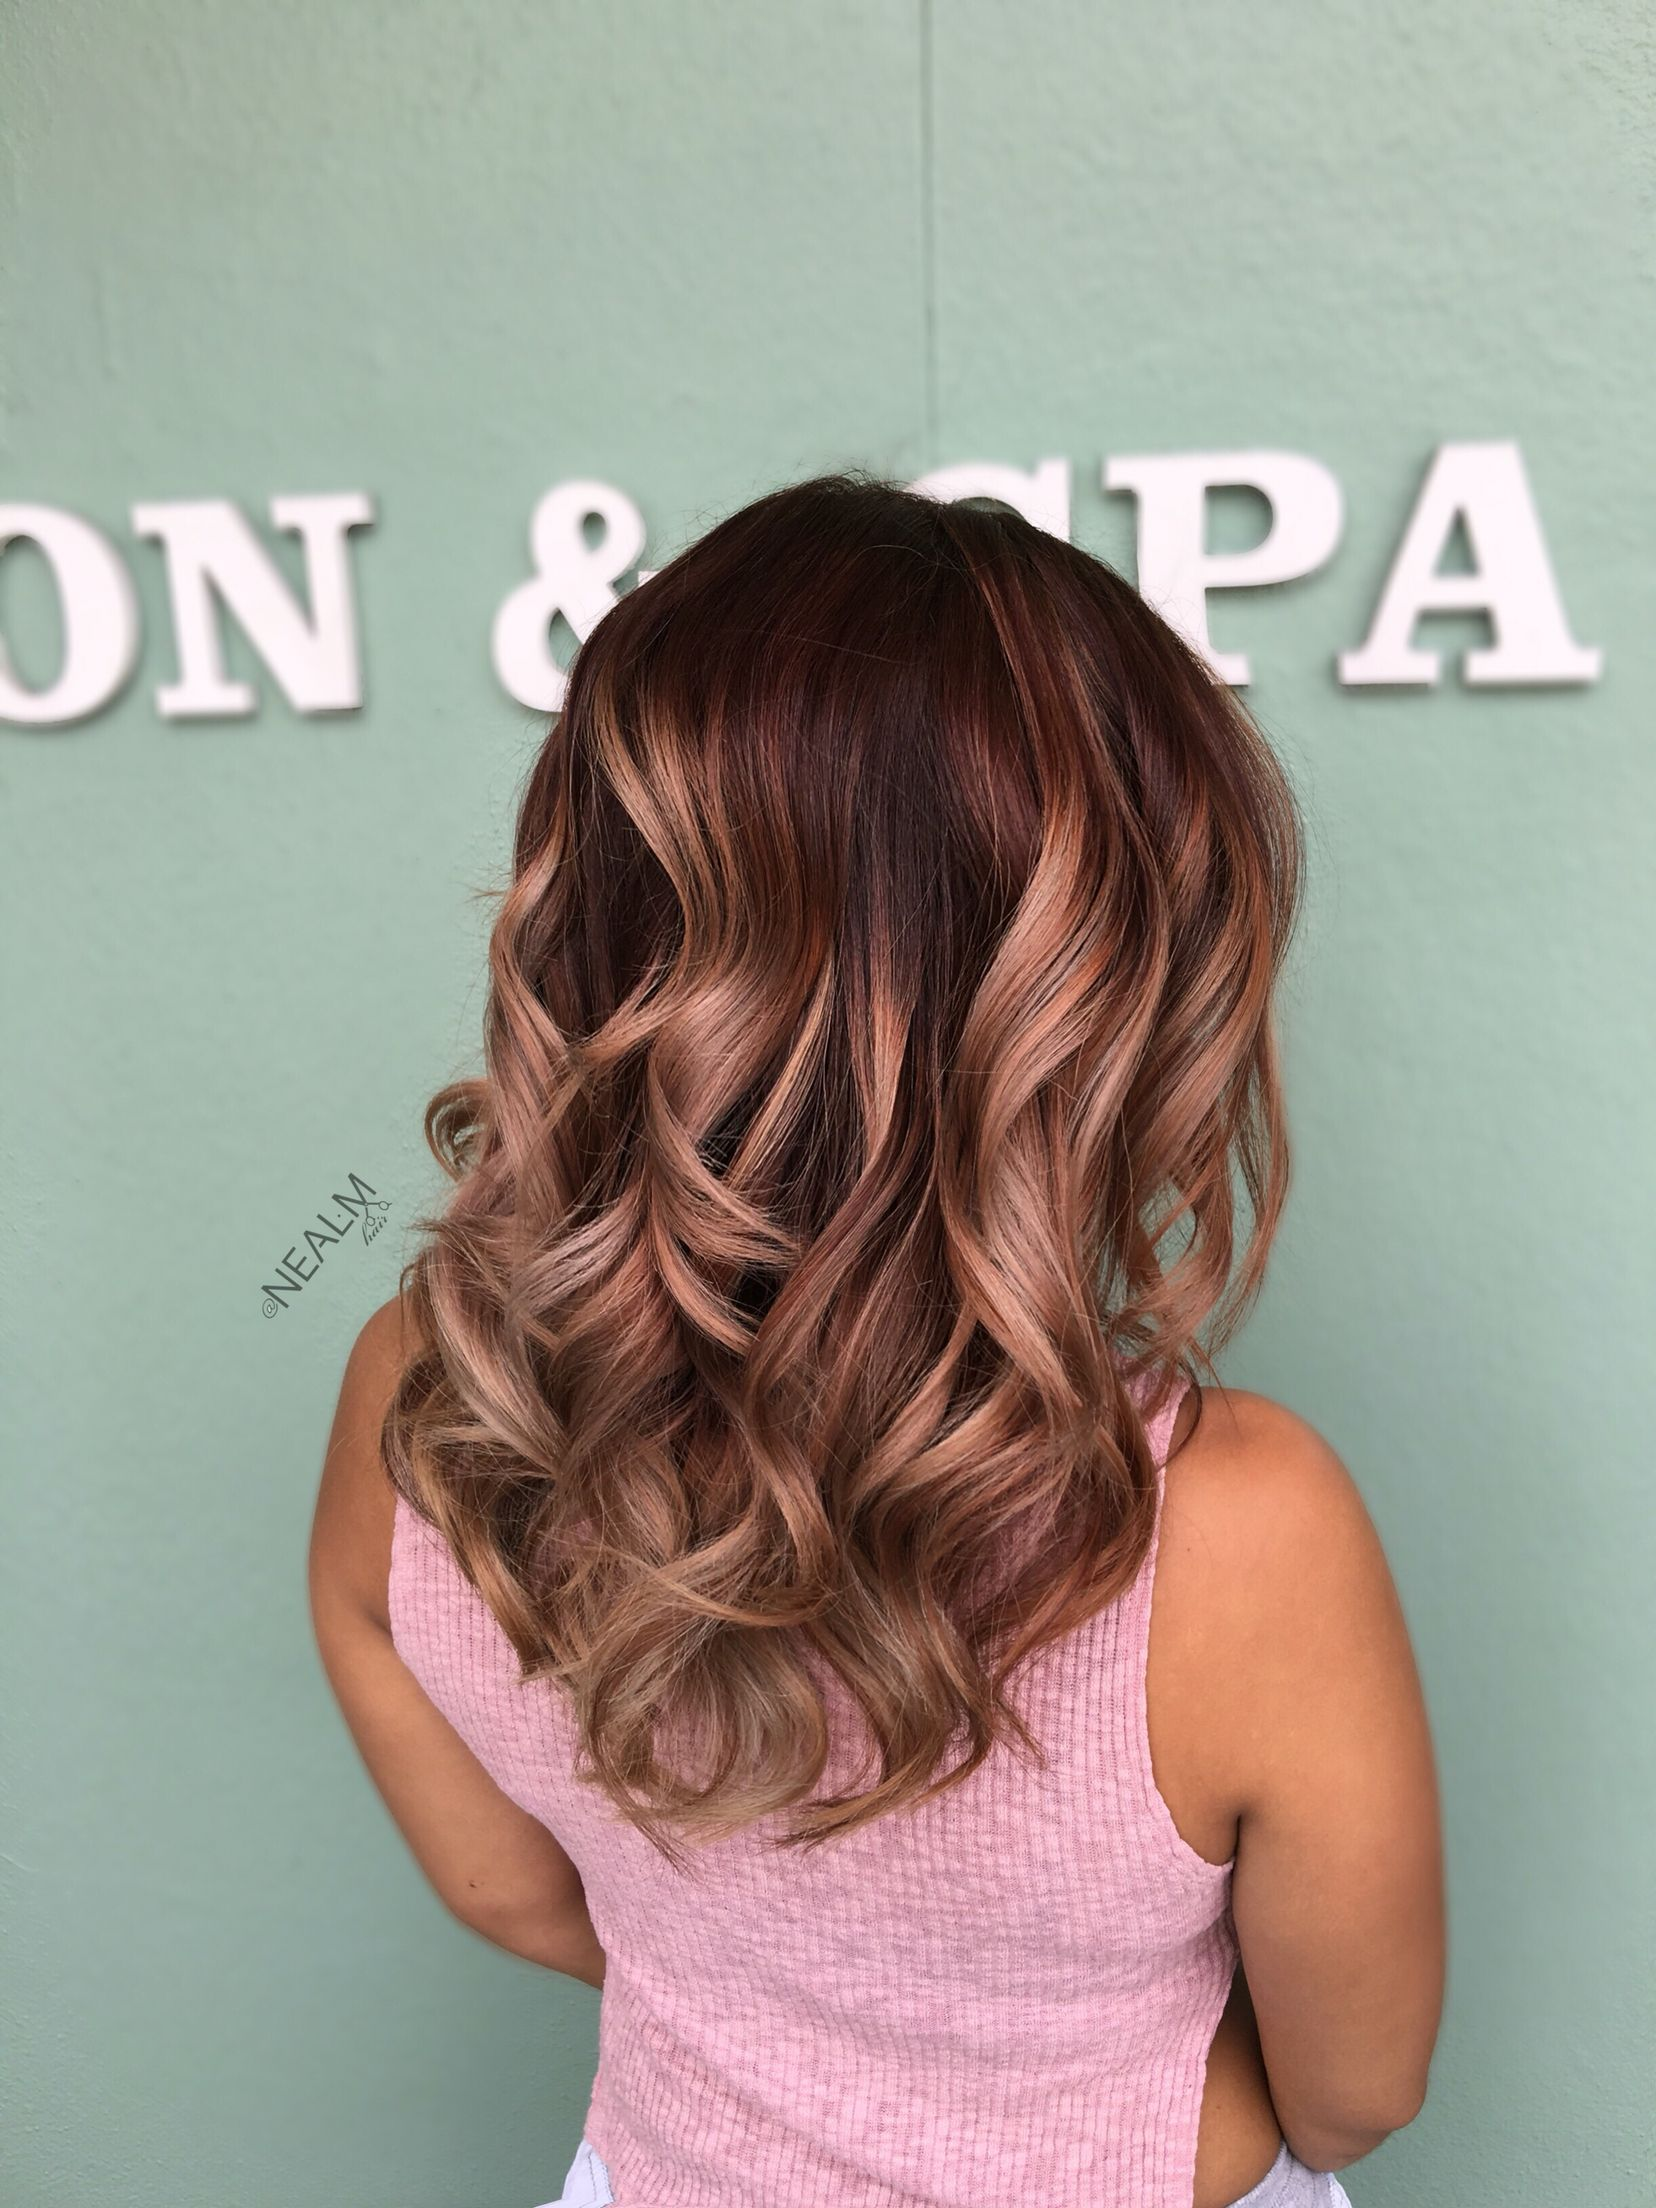 Rose gold Balayage ombré hair painting by @nealmhair in 2019